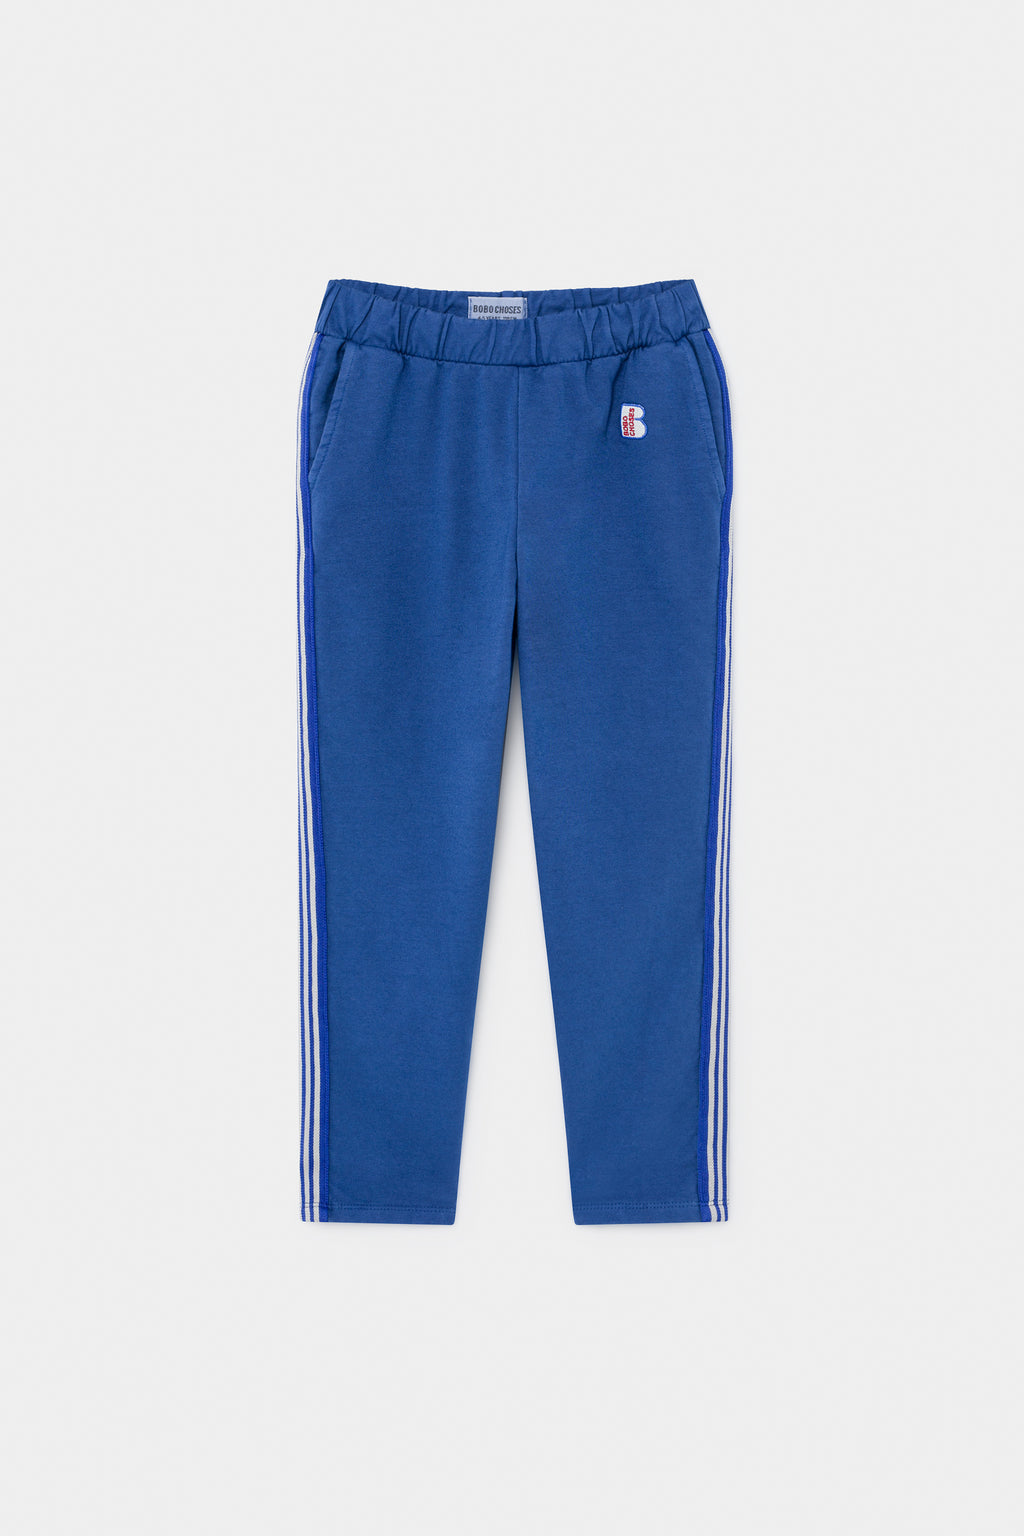 Bobo Choses Blue Jogging Pants